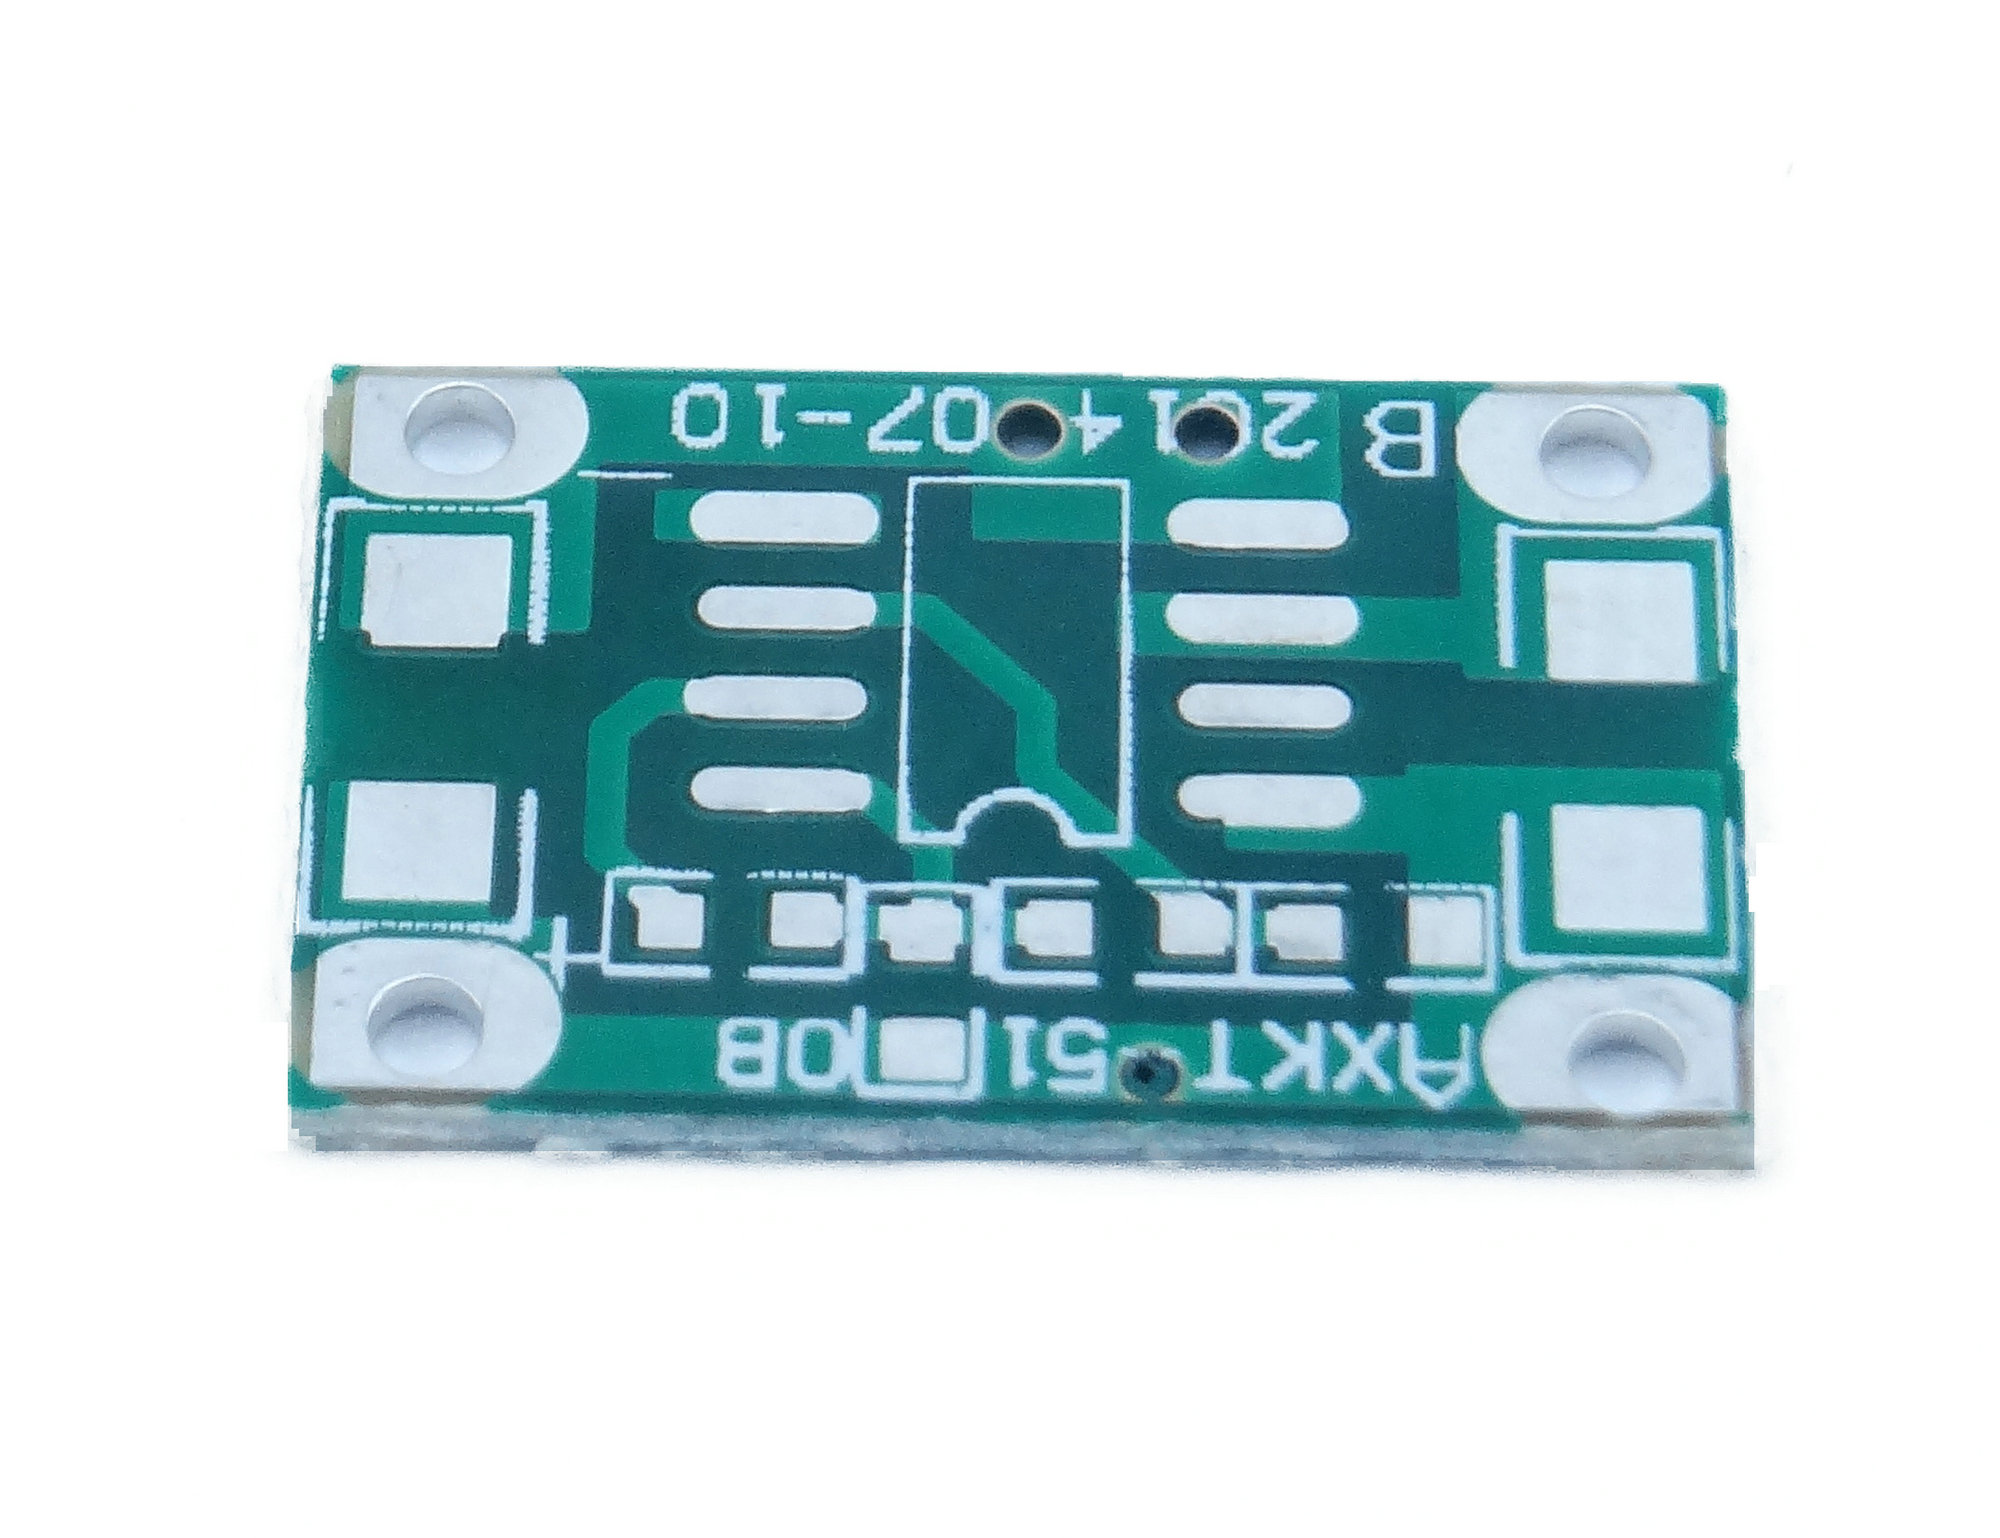 medium resolution of 510 single chip series wireless charging power supply module circuit diagram pcb circuit board test board in instrument parts accessories from tools on